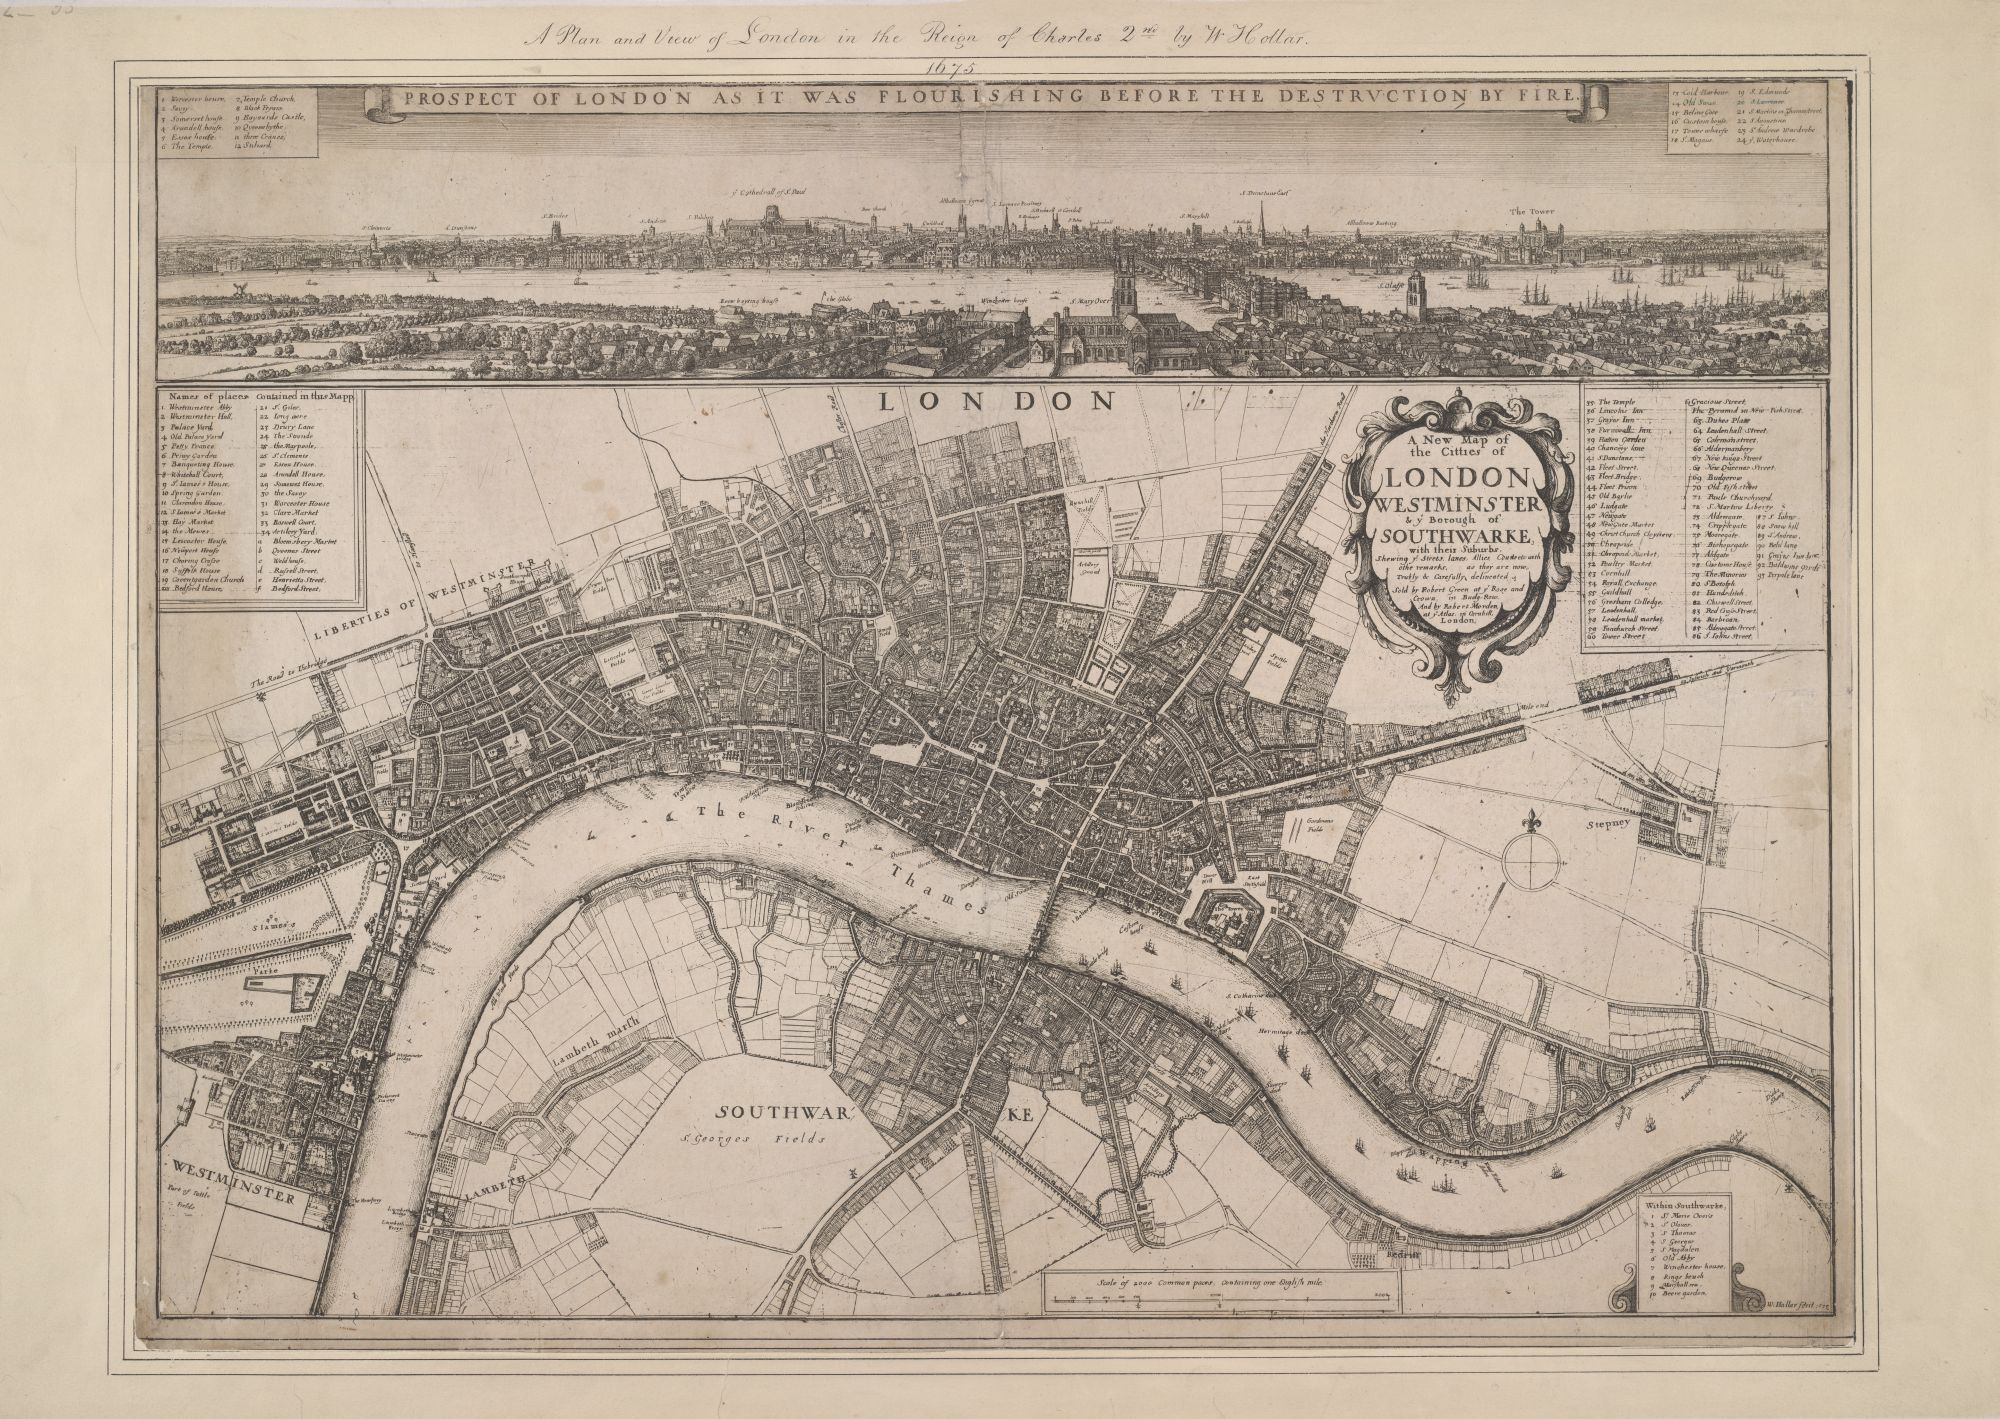 Wenceslaus Hollar's 1675 map of the city of London, Westminster and Southwark after the Great Fire